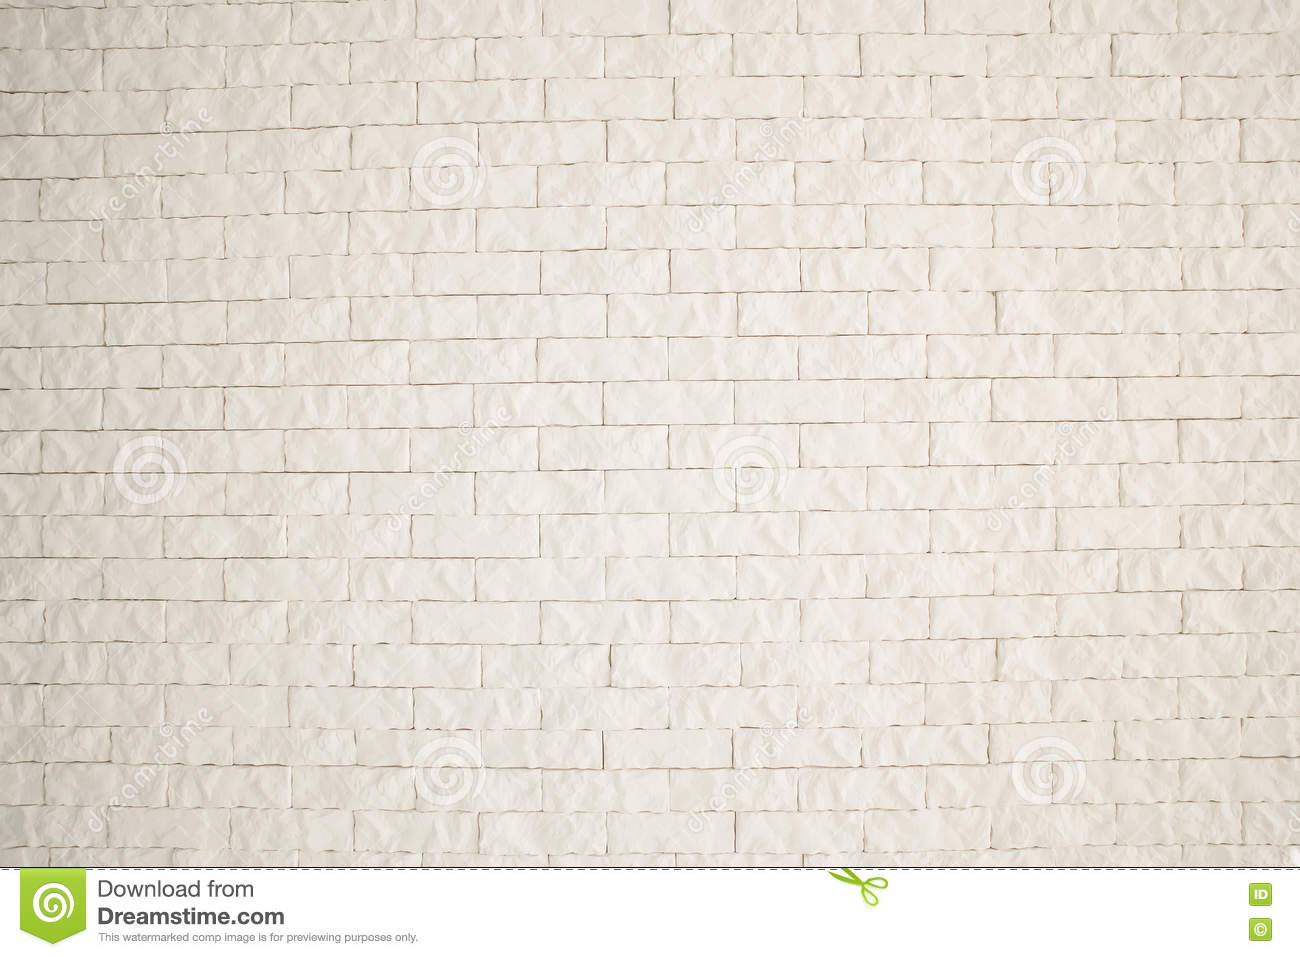 Pared de ladrillo blanca para la textura del interior o for Impermeabilizar pared ladrillo exterior